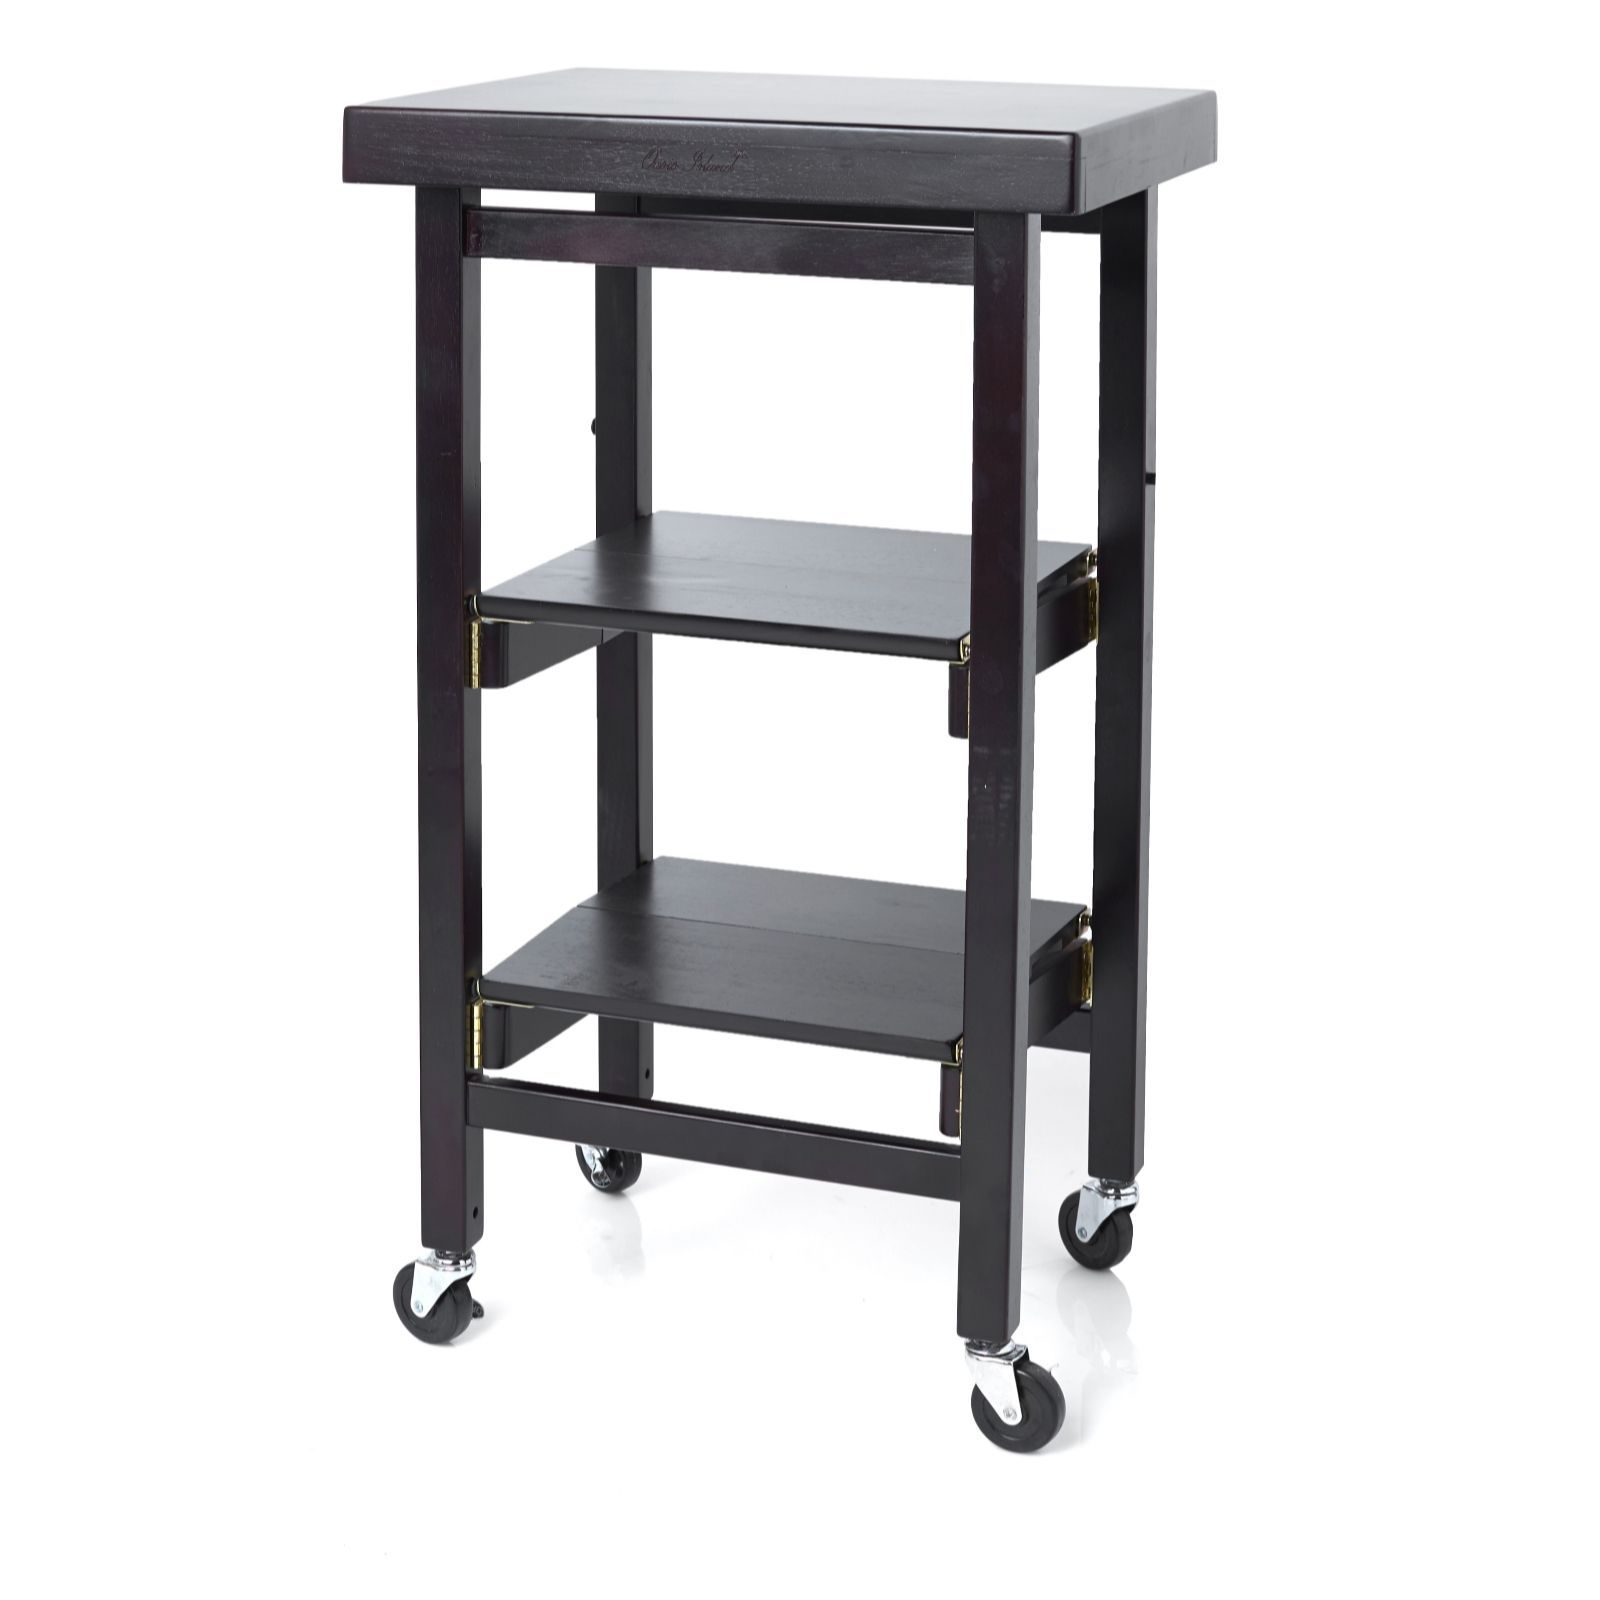 QVCUK Clearance Offer 804516 Folding Island The Mini Kitchen Trolley ...